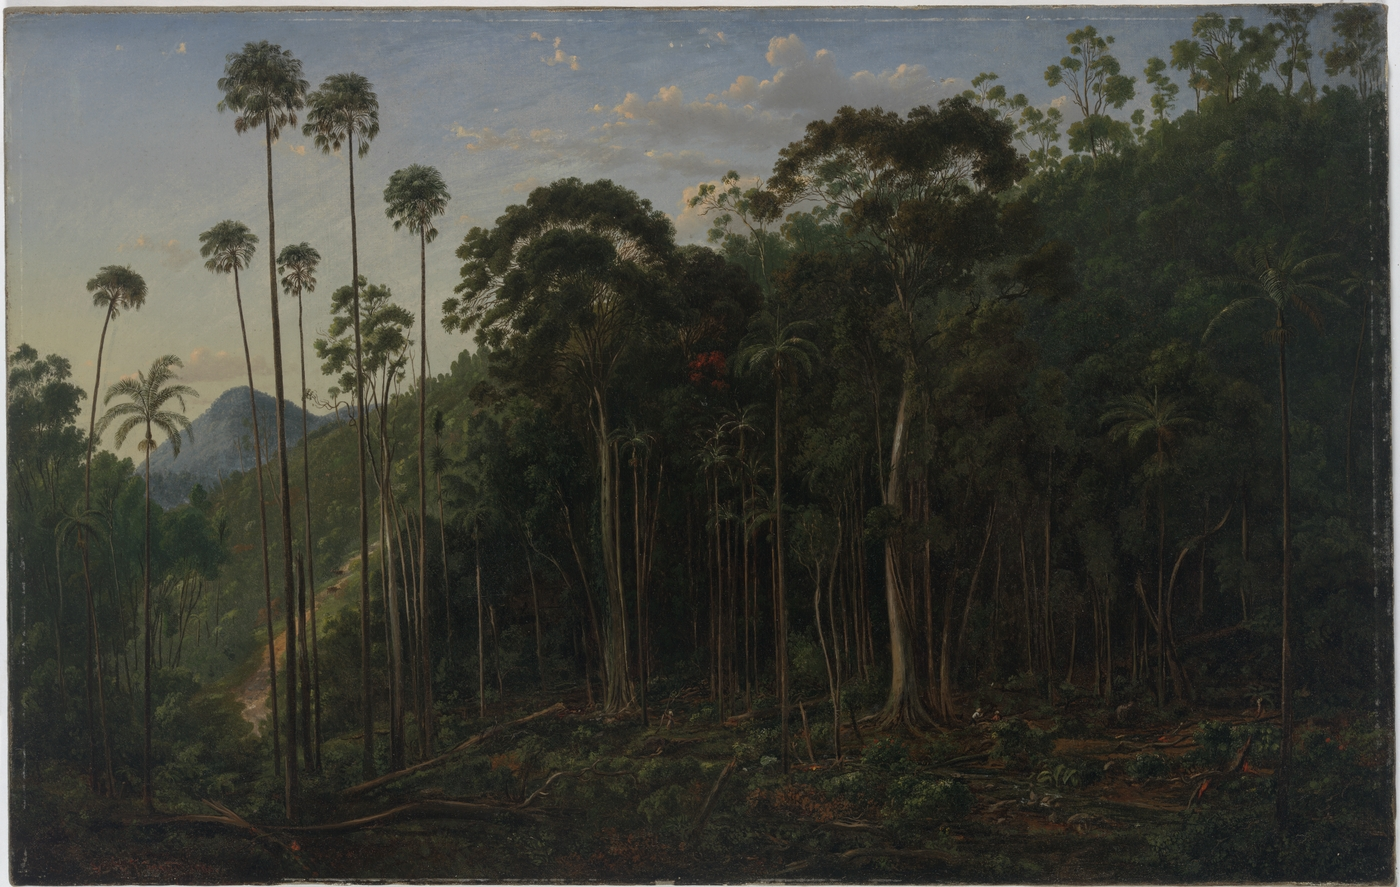 Cabbage Trees near the Shoalhaven River, N.S.W., 1860 / Eugene von Guerard